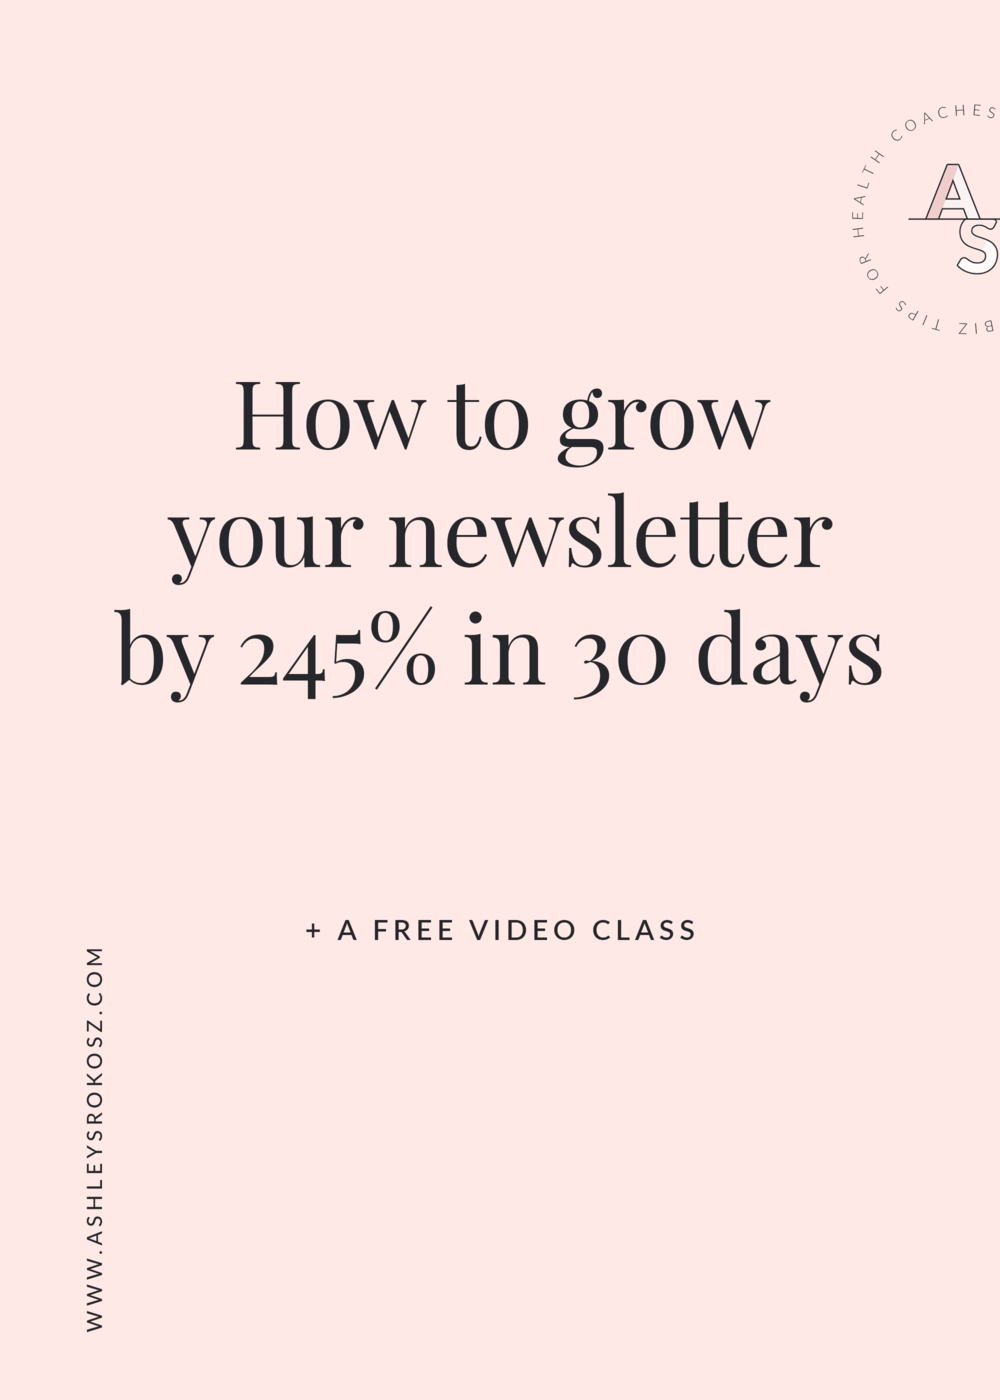 Are you a holistic health coach who wants to grow your e-mail newsletter list? Ashley Srokosz, Registered Holistic Nutritionist, shares the exact steps she used to grow her e-mail newsletter list by 245% in 30 days, leading to $6862.90 in sales from an online program a month later. Click here to see the step-by-step instructions that are perfect for holistic nutritionists, health coaches, or yoga teachers!